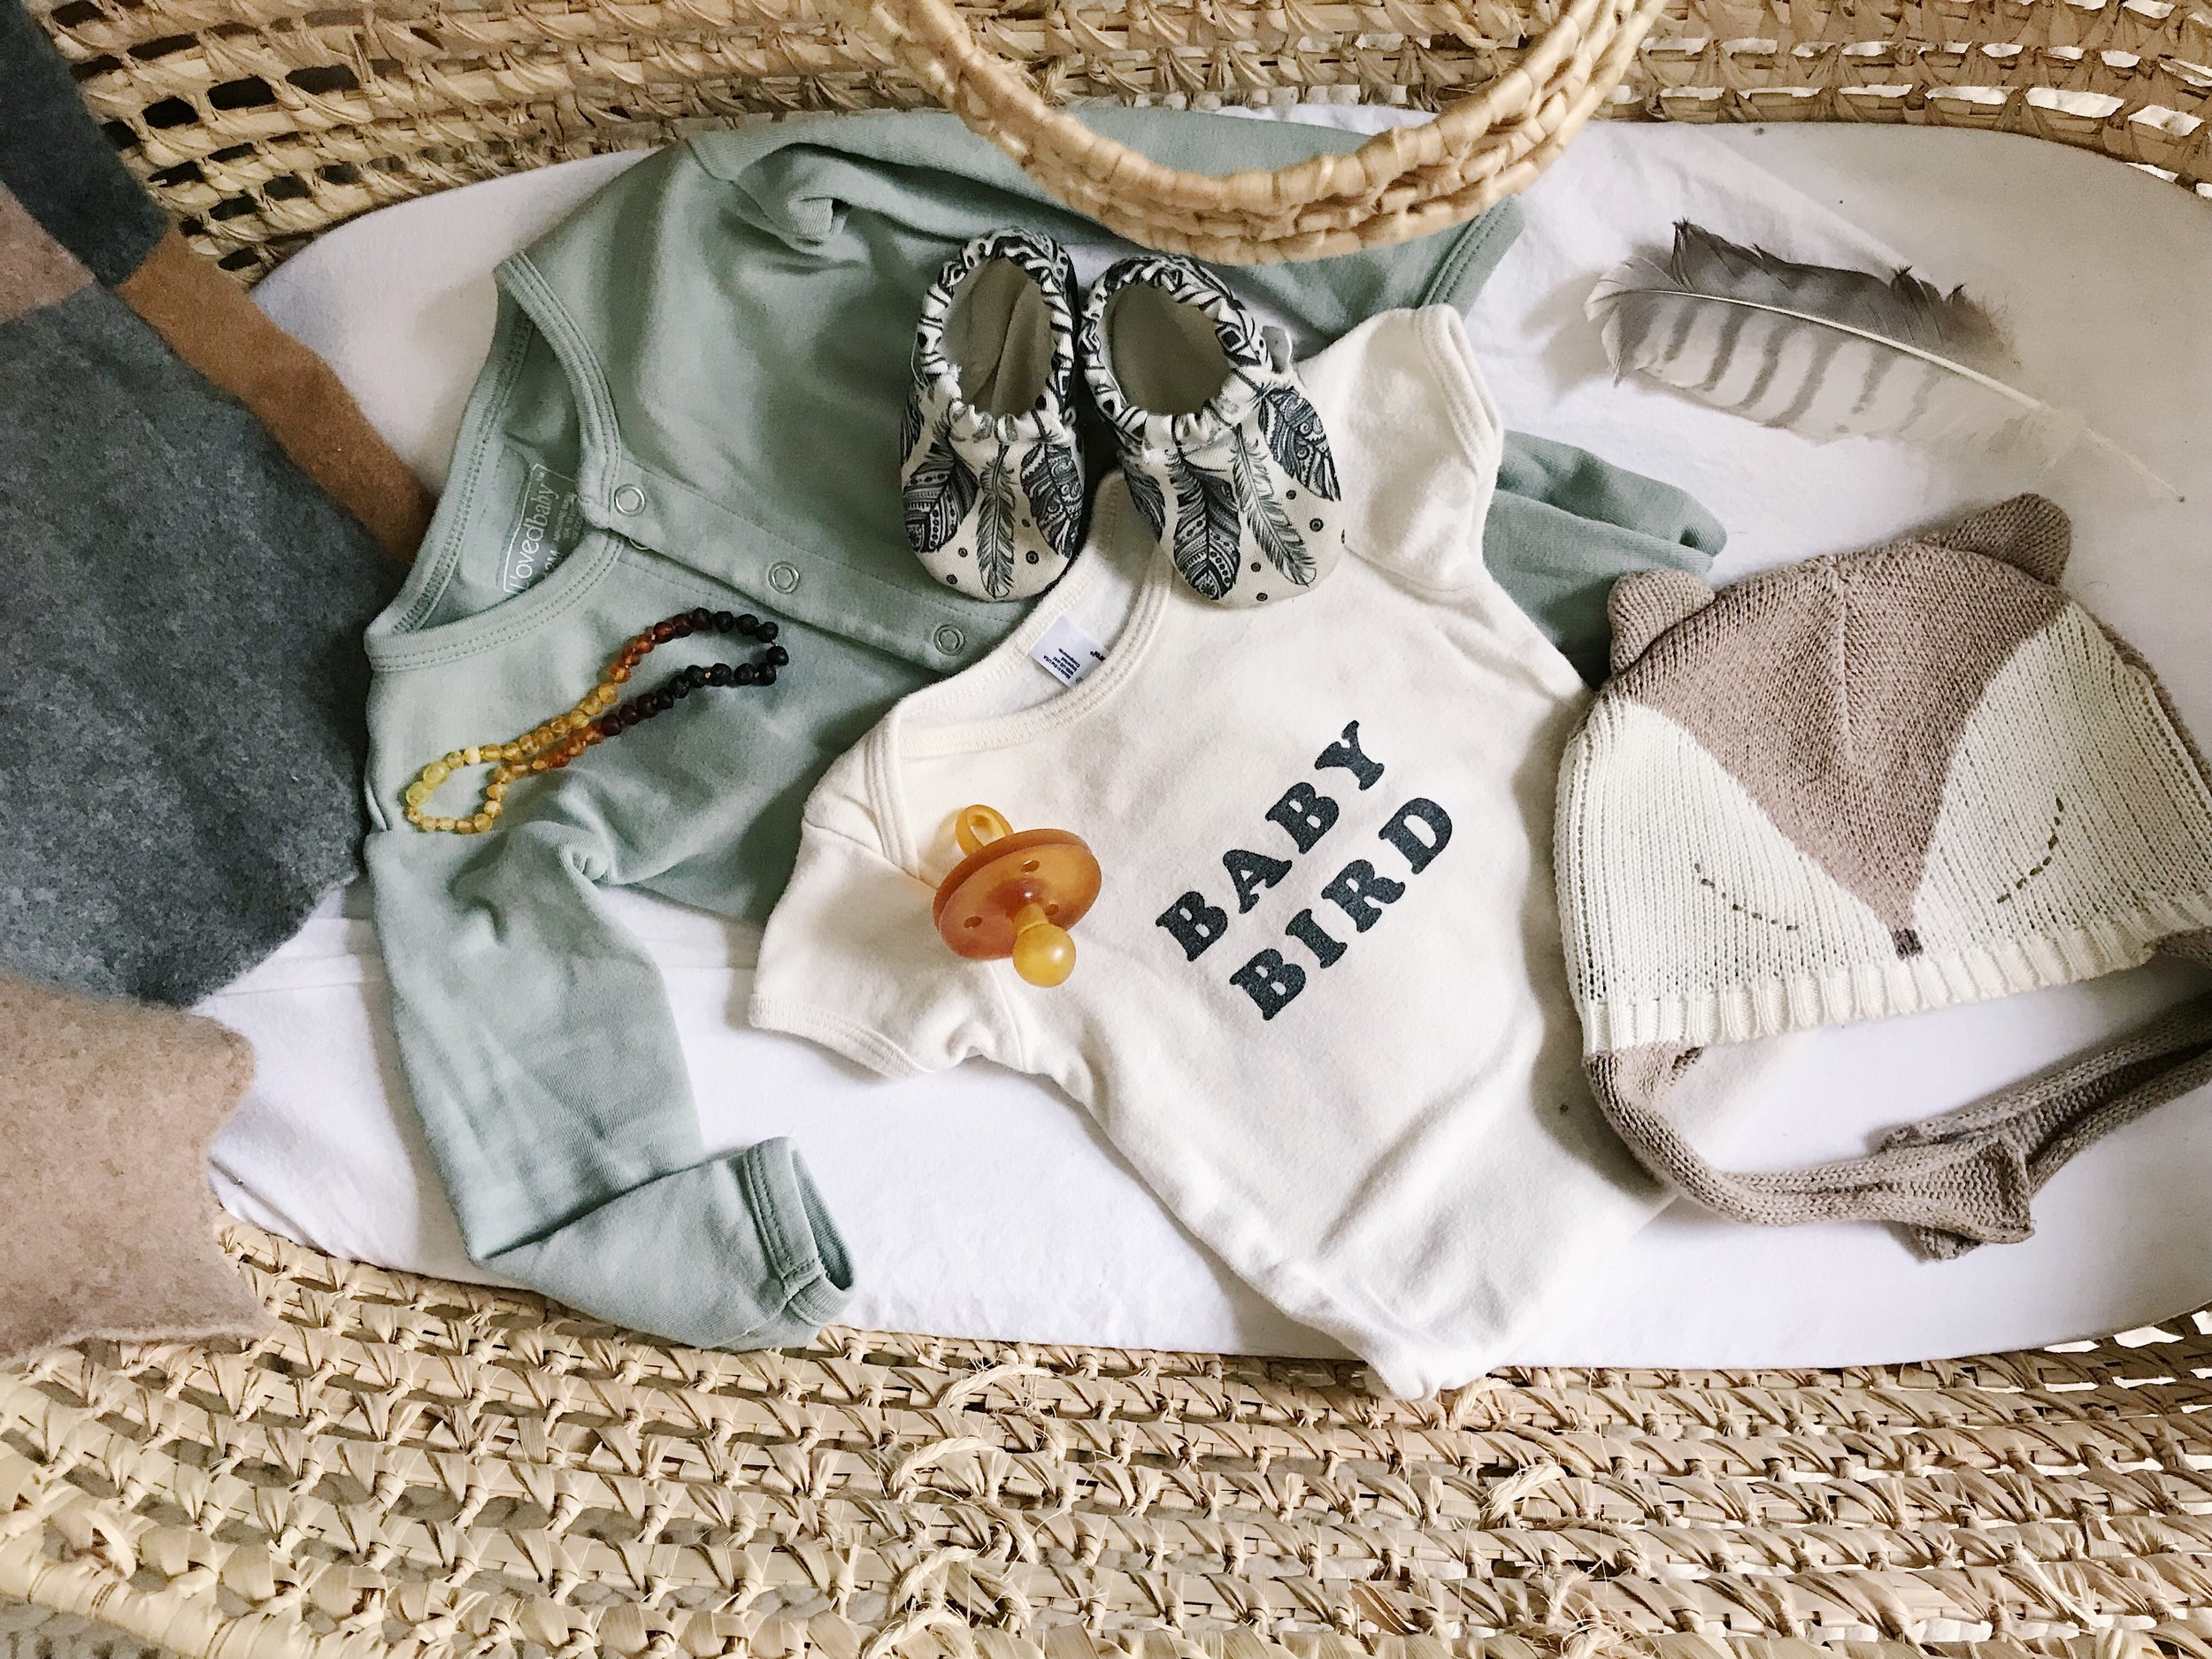 ITEMS:   Amber Necklace ,  Seafoam Footed Pajama ,  Baby Bird Onesie ,  Pacifier ,  Booties ,  Hat ,  Moses Basket ,  Mattress ,  Sheet